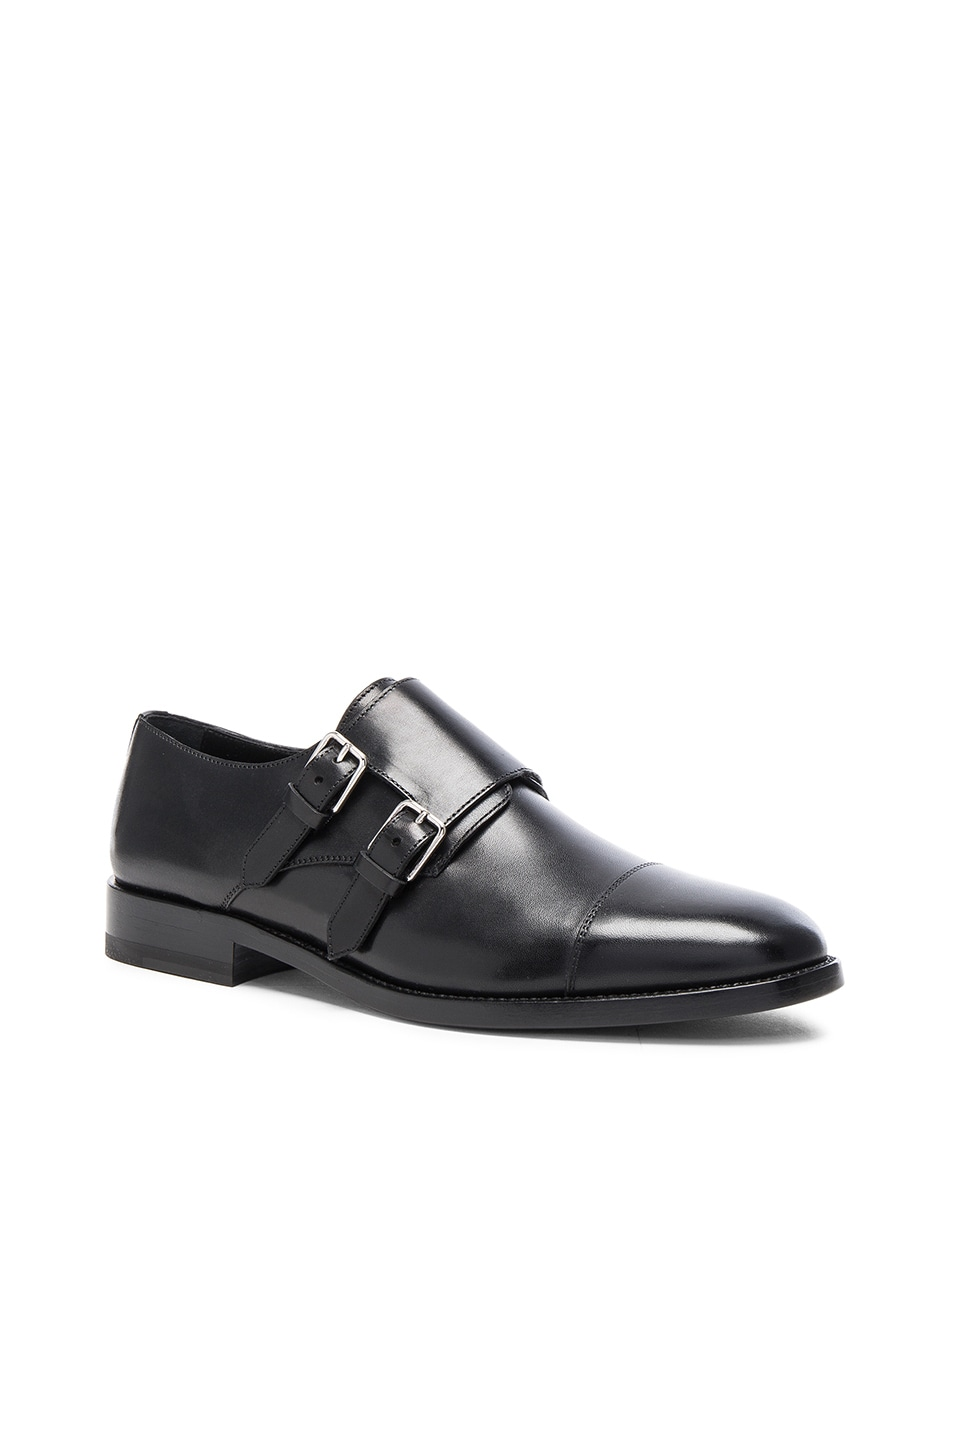 Image 2 of Saint Laurent Dylan Monk Shoes in Black